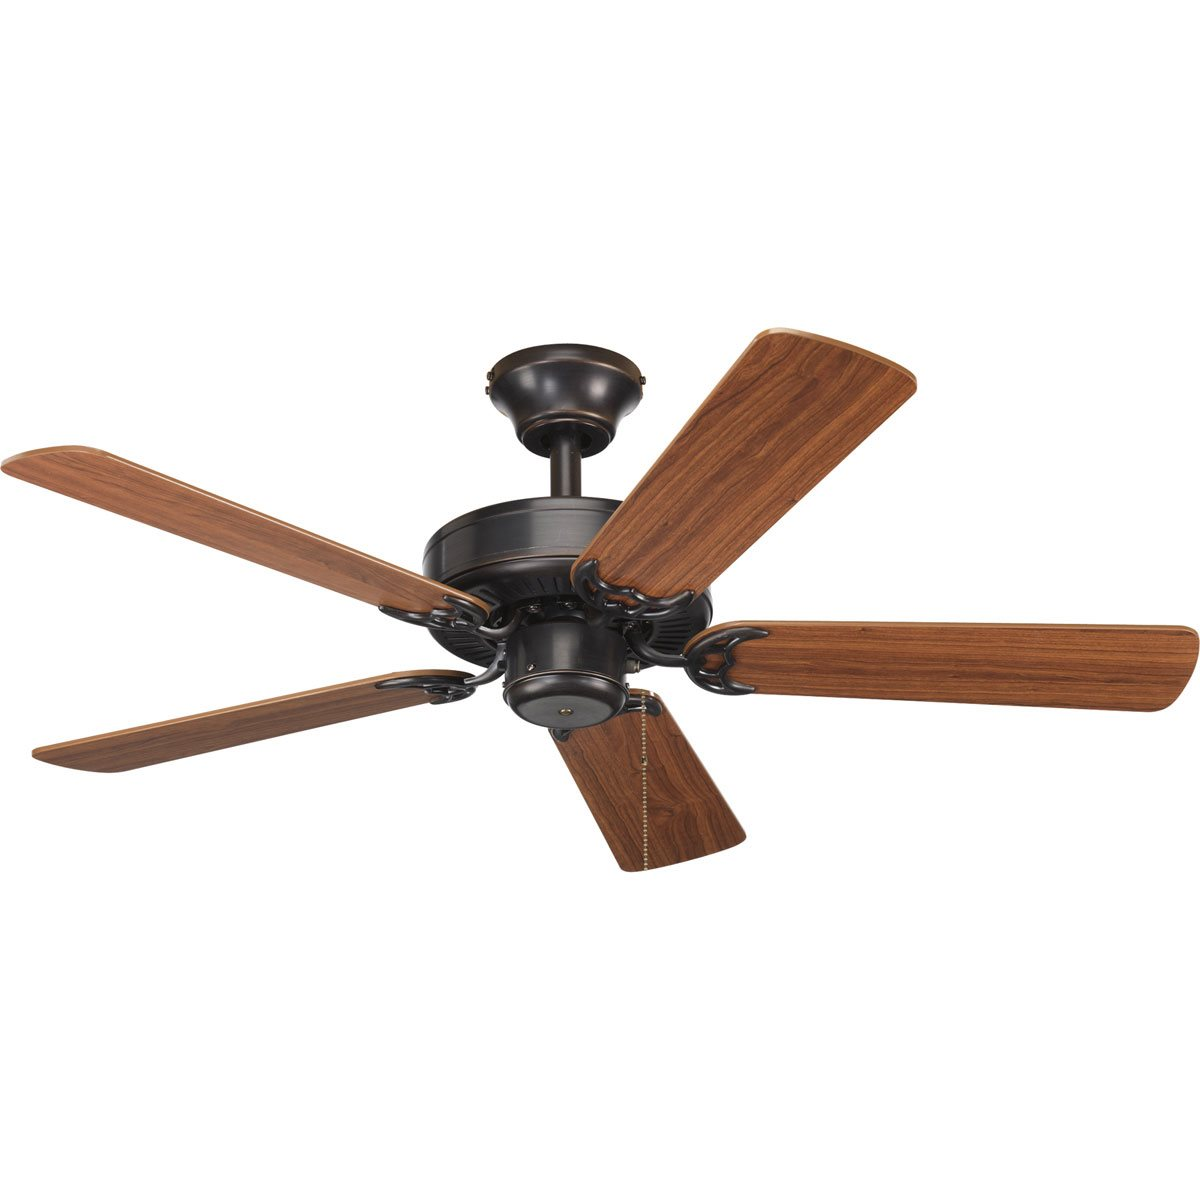 Old Ceiling Fans : Airpro p quot builder transitional ceiling fan pg